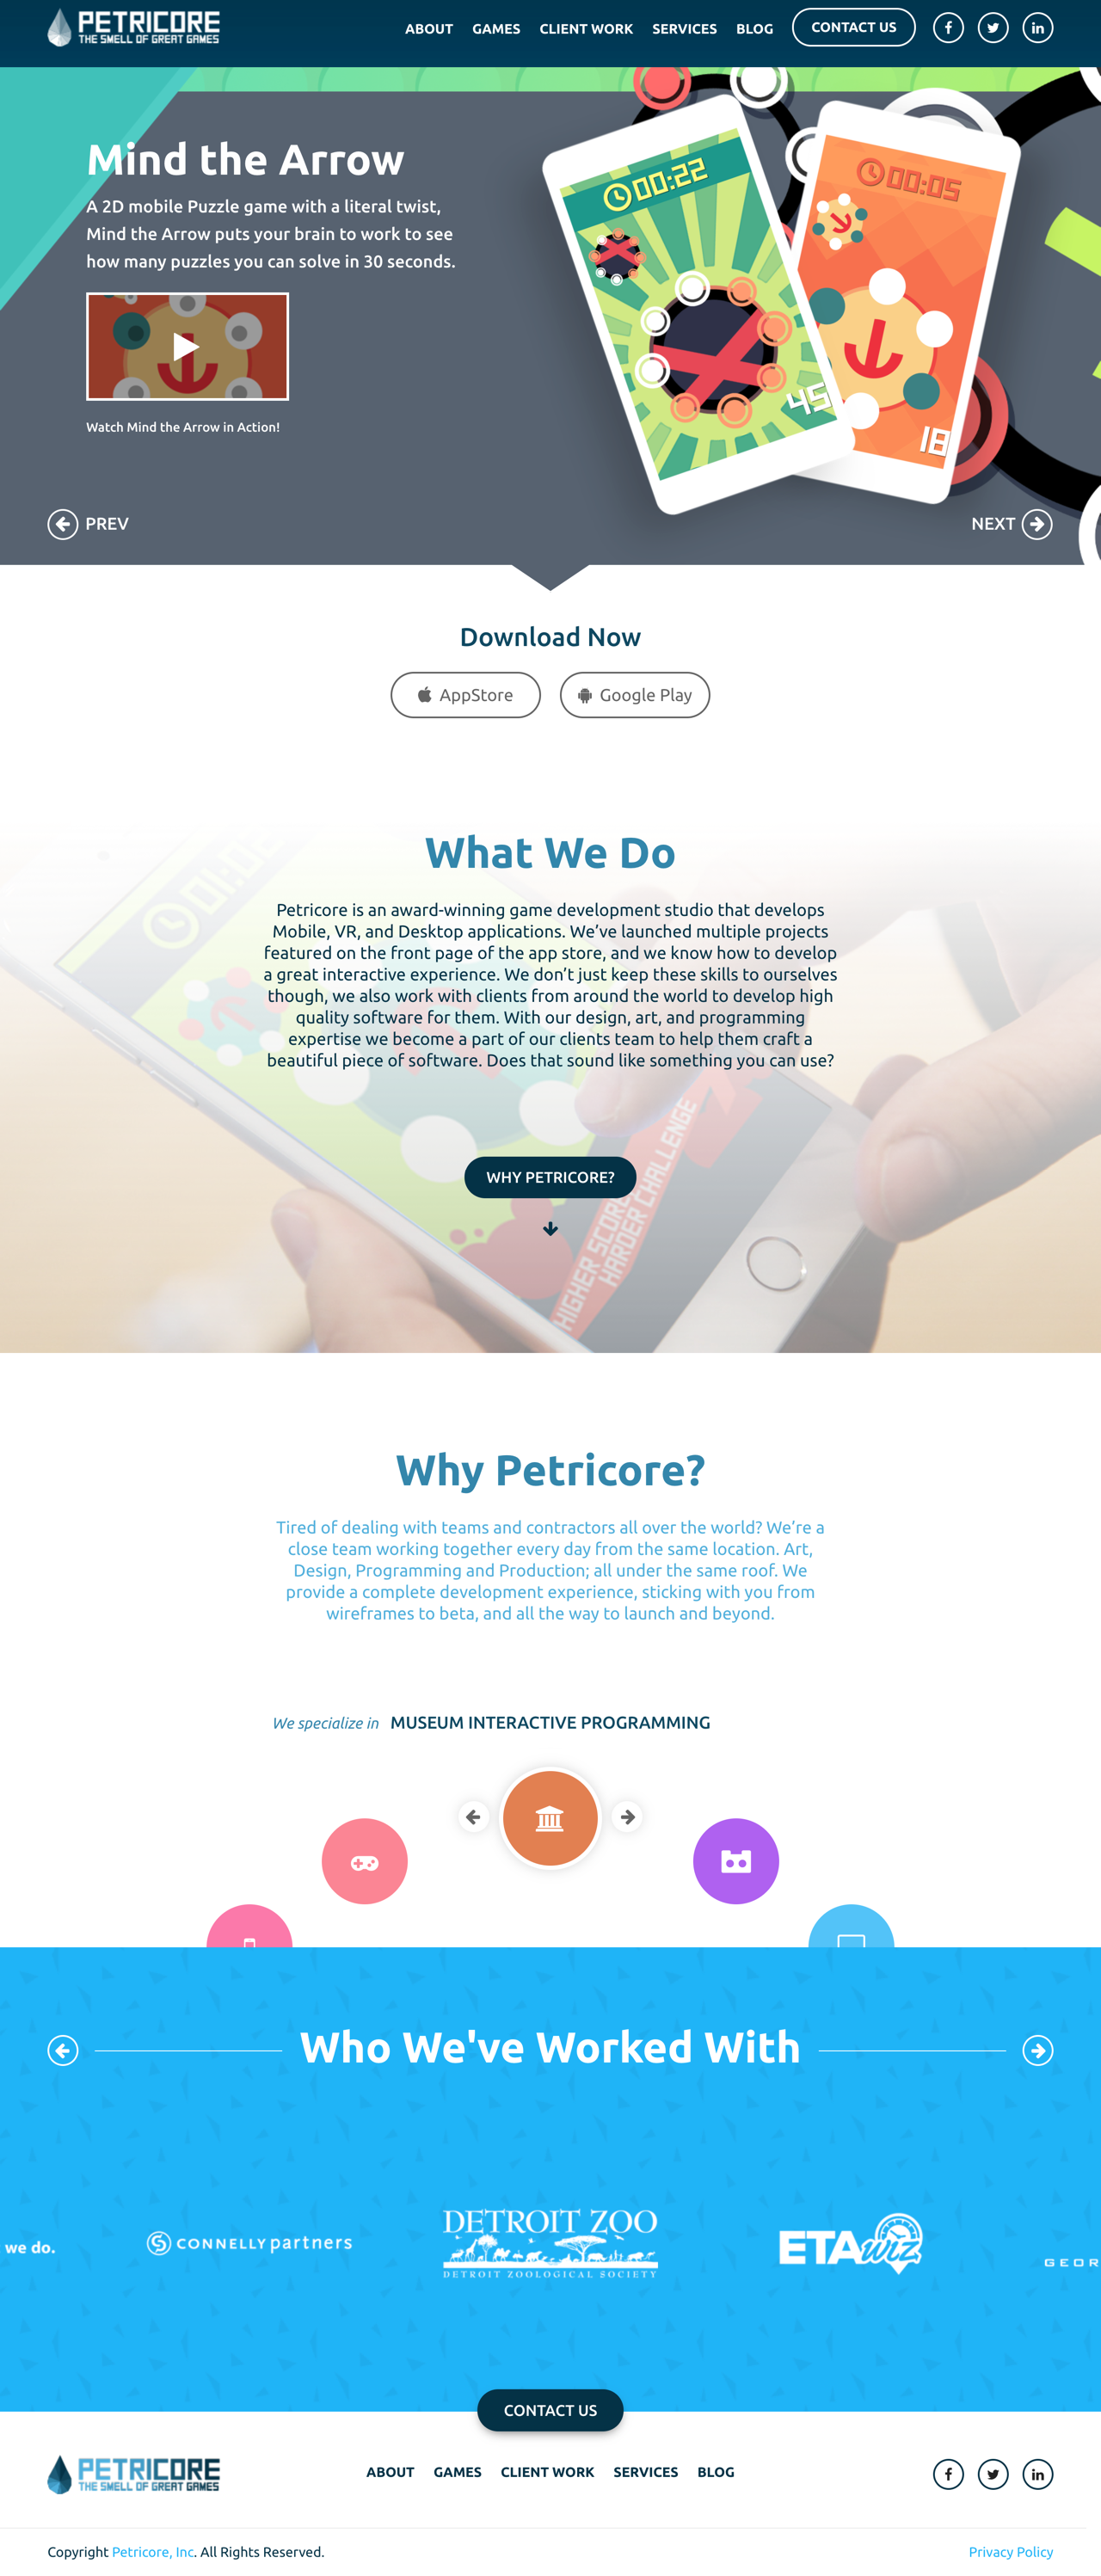 Petricore Games Full Landing Page